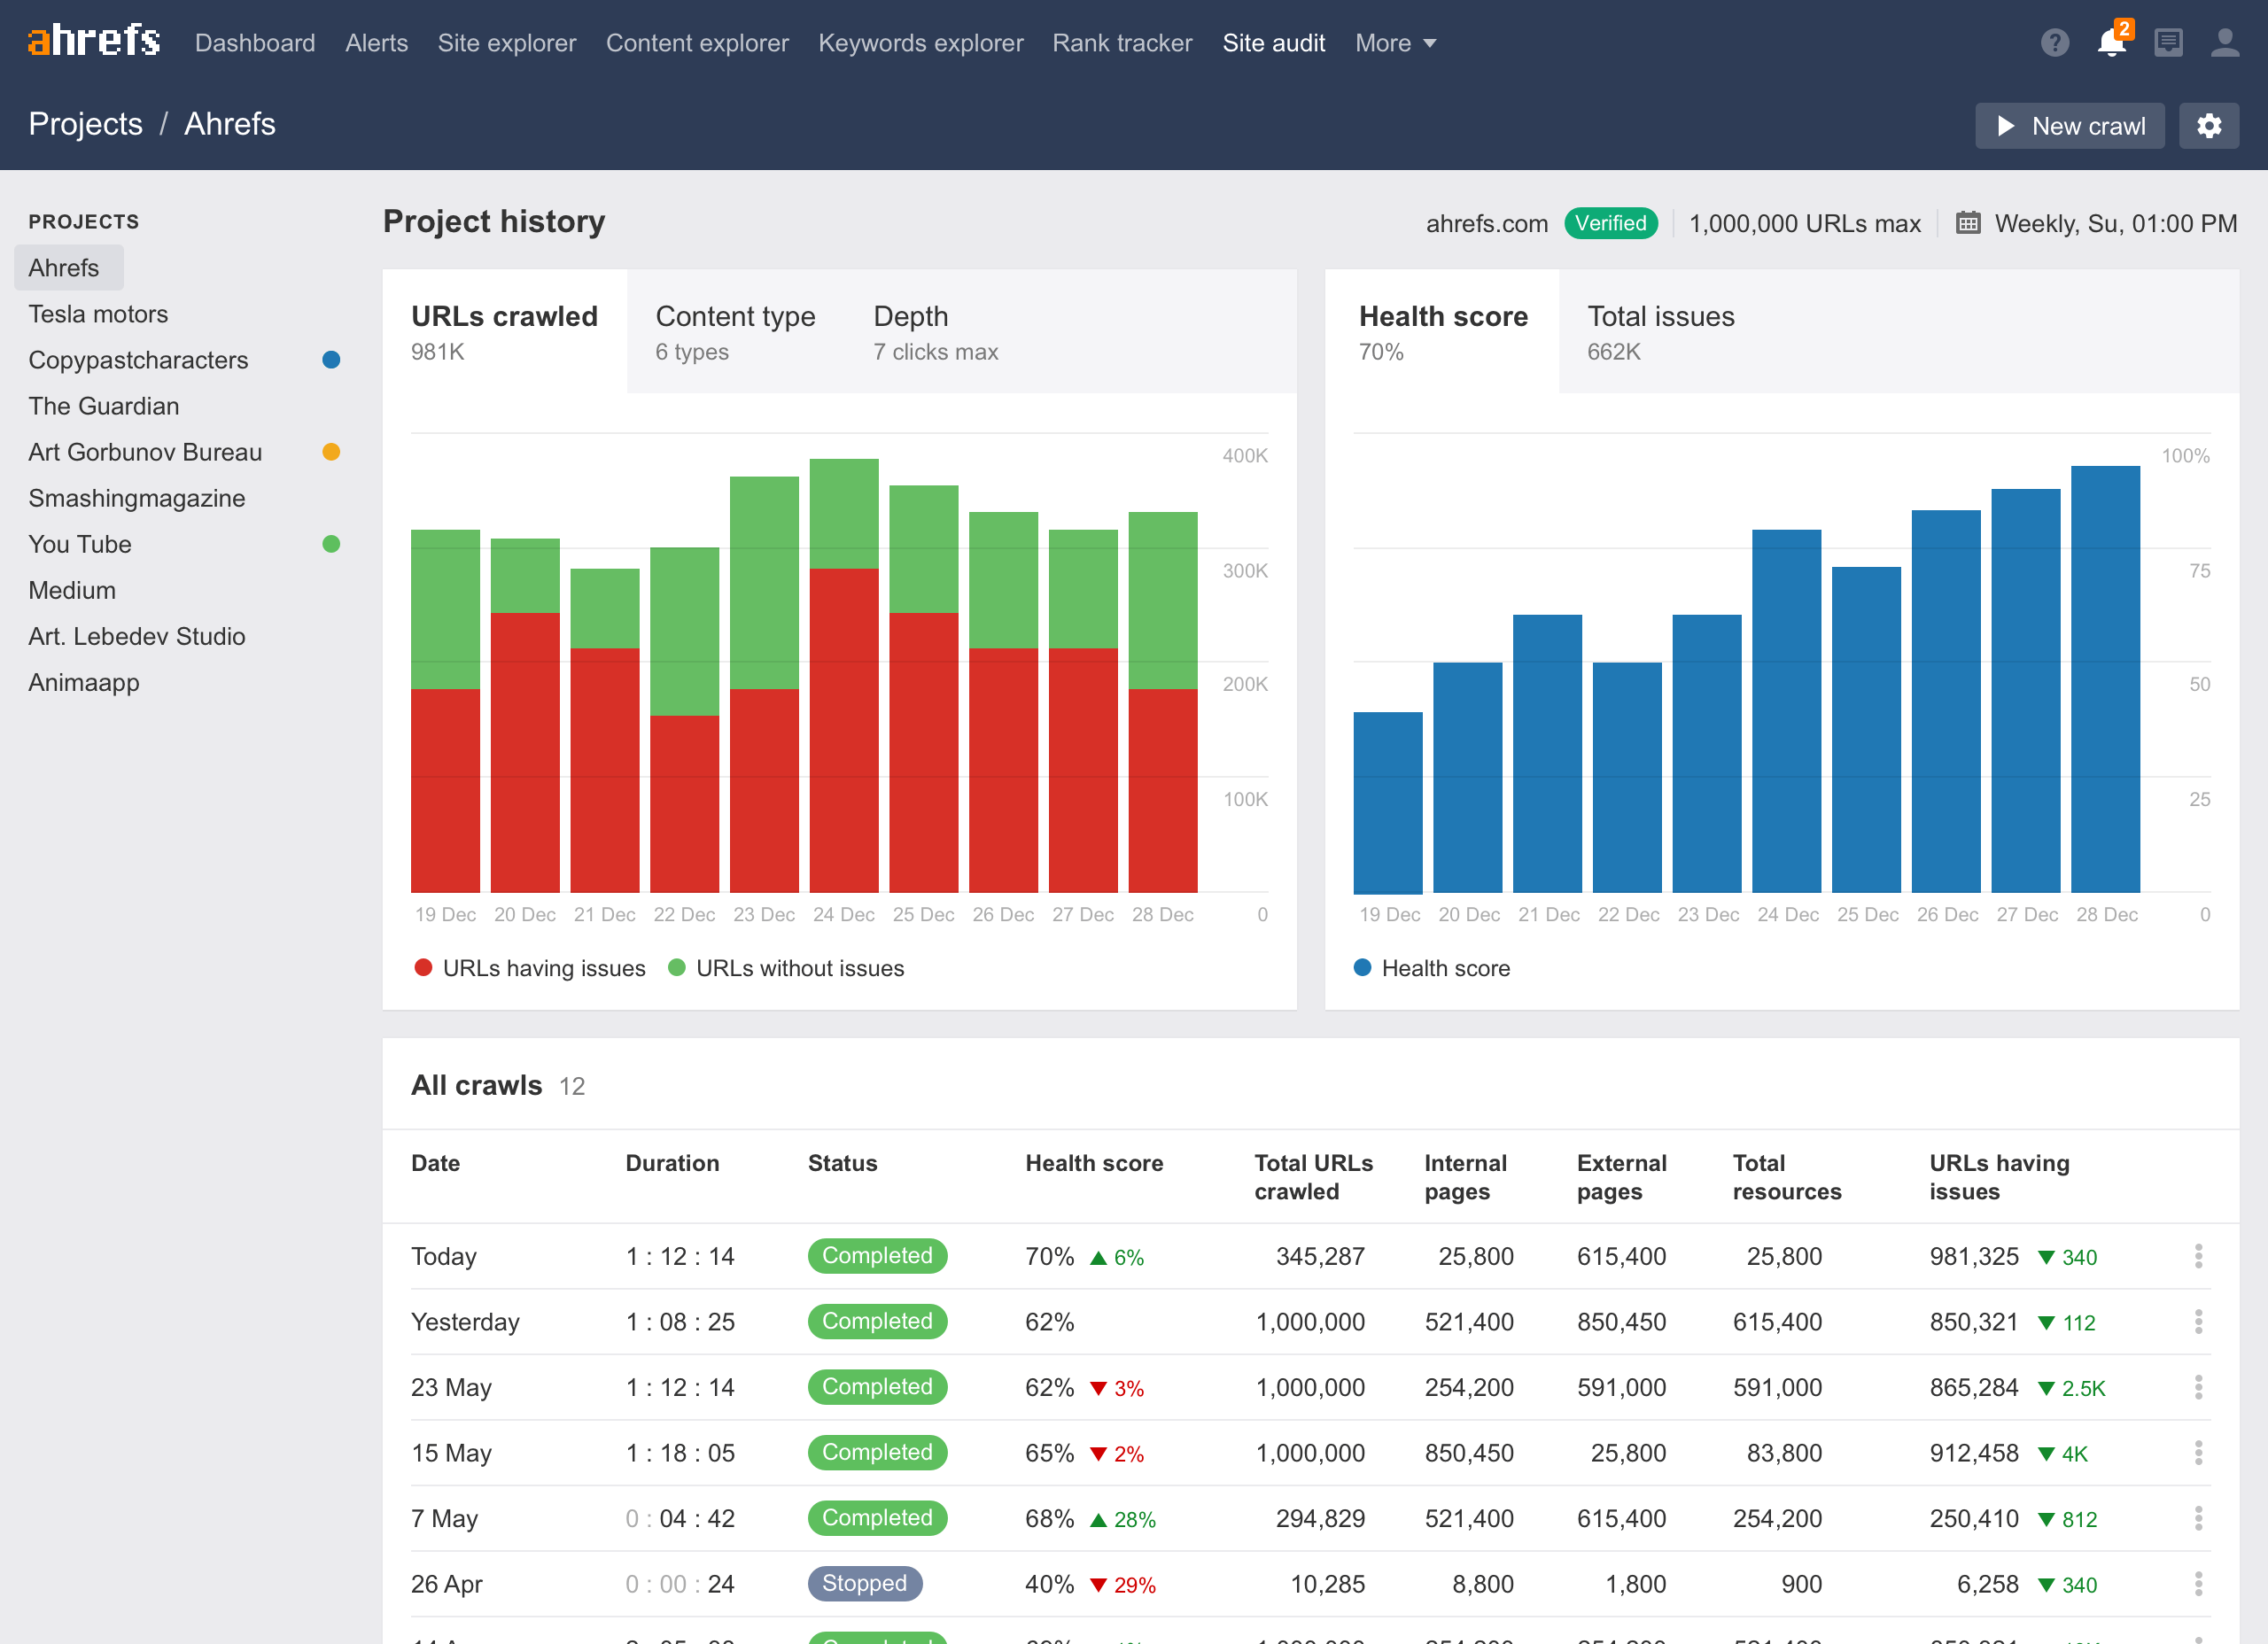 Ahrefs Launches an Incredible New Site Audit Tool » Martech Zone